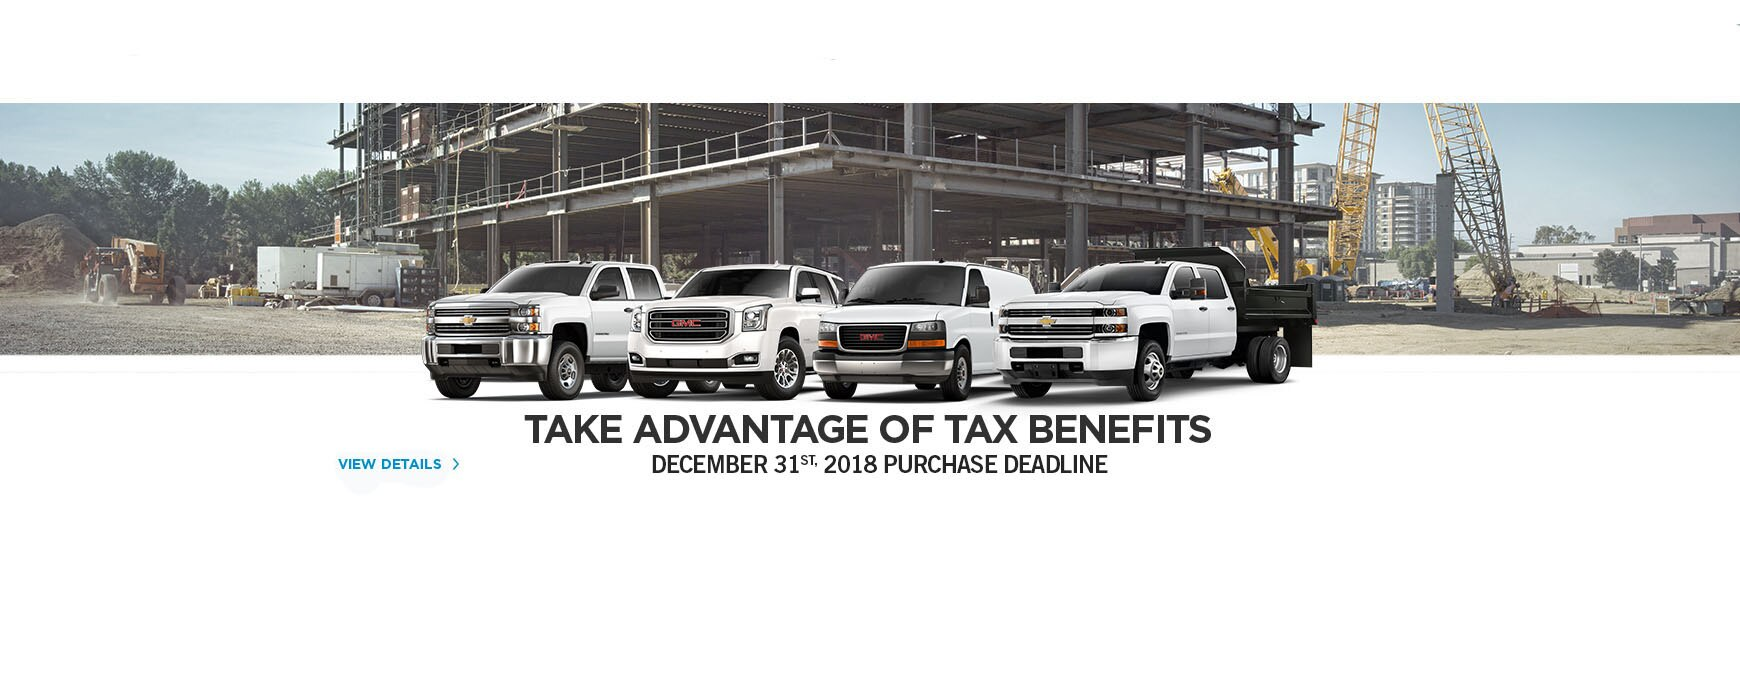 Deduct up to 100% of purchase price of eligible GM Fleet vehicles.